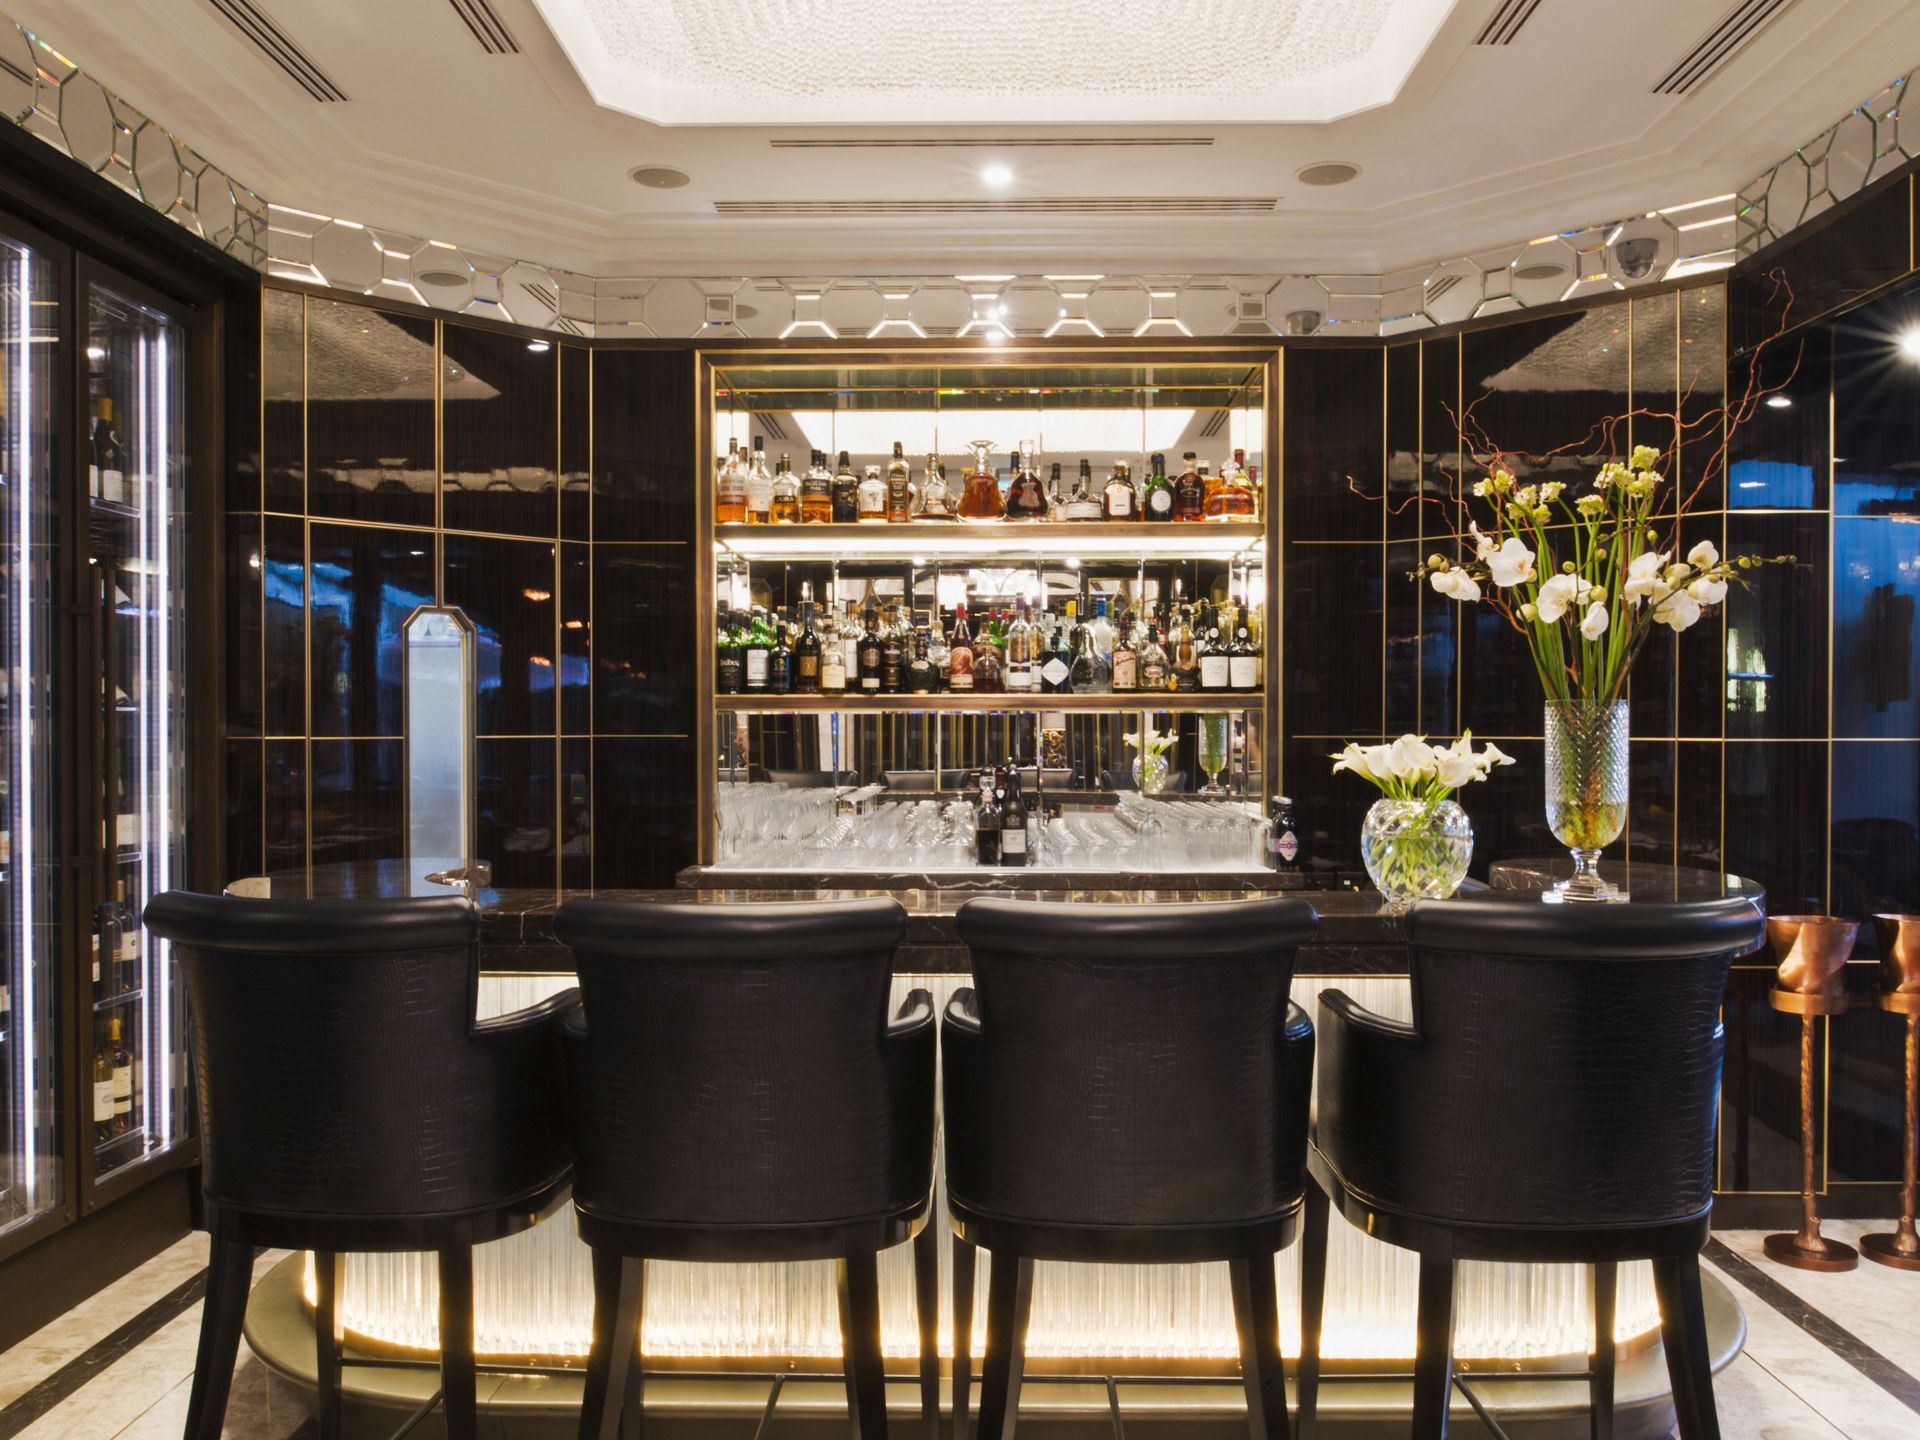 Crsytal Bar at The Wellesley Hotel in London Very beautifull one ...